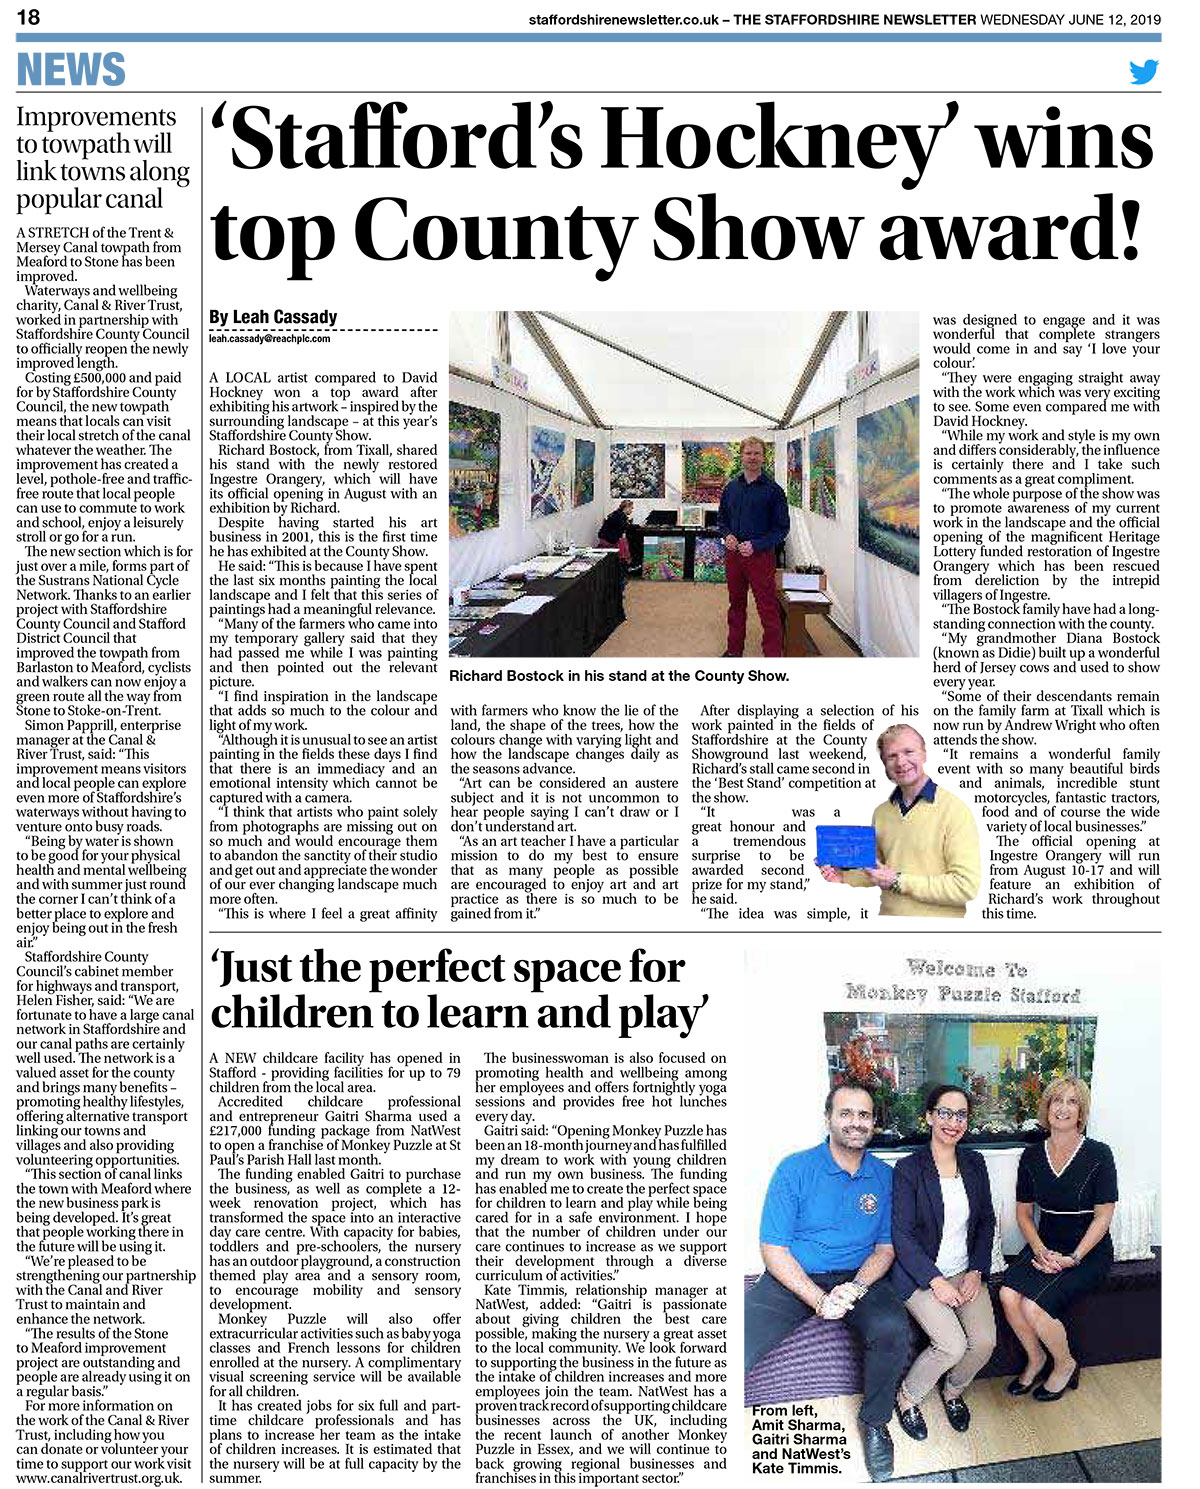 Staffordshire County Show Award 2019 - Richard Bostock